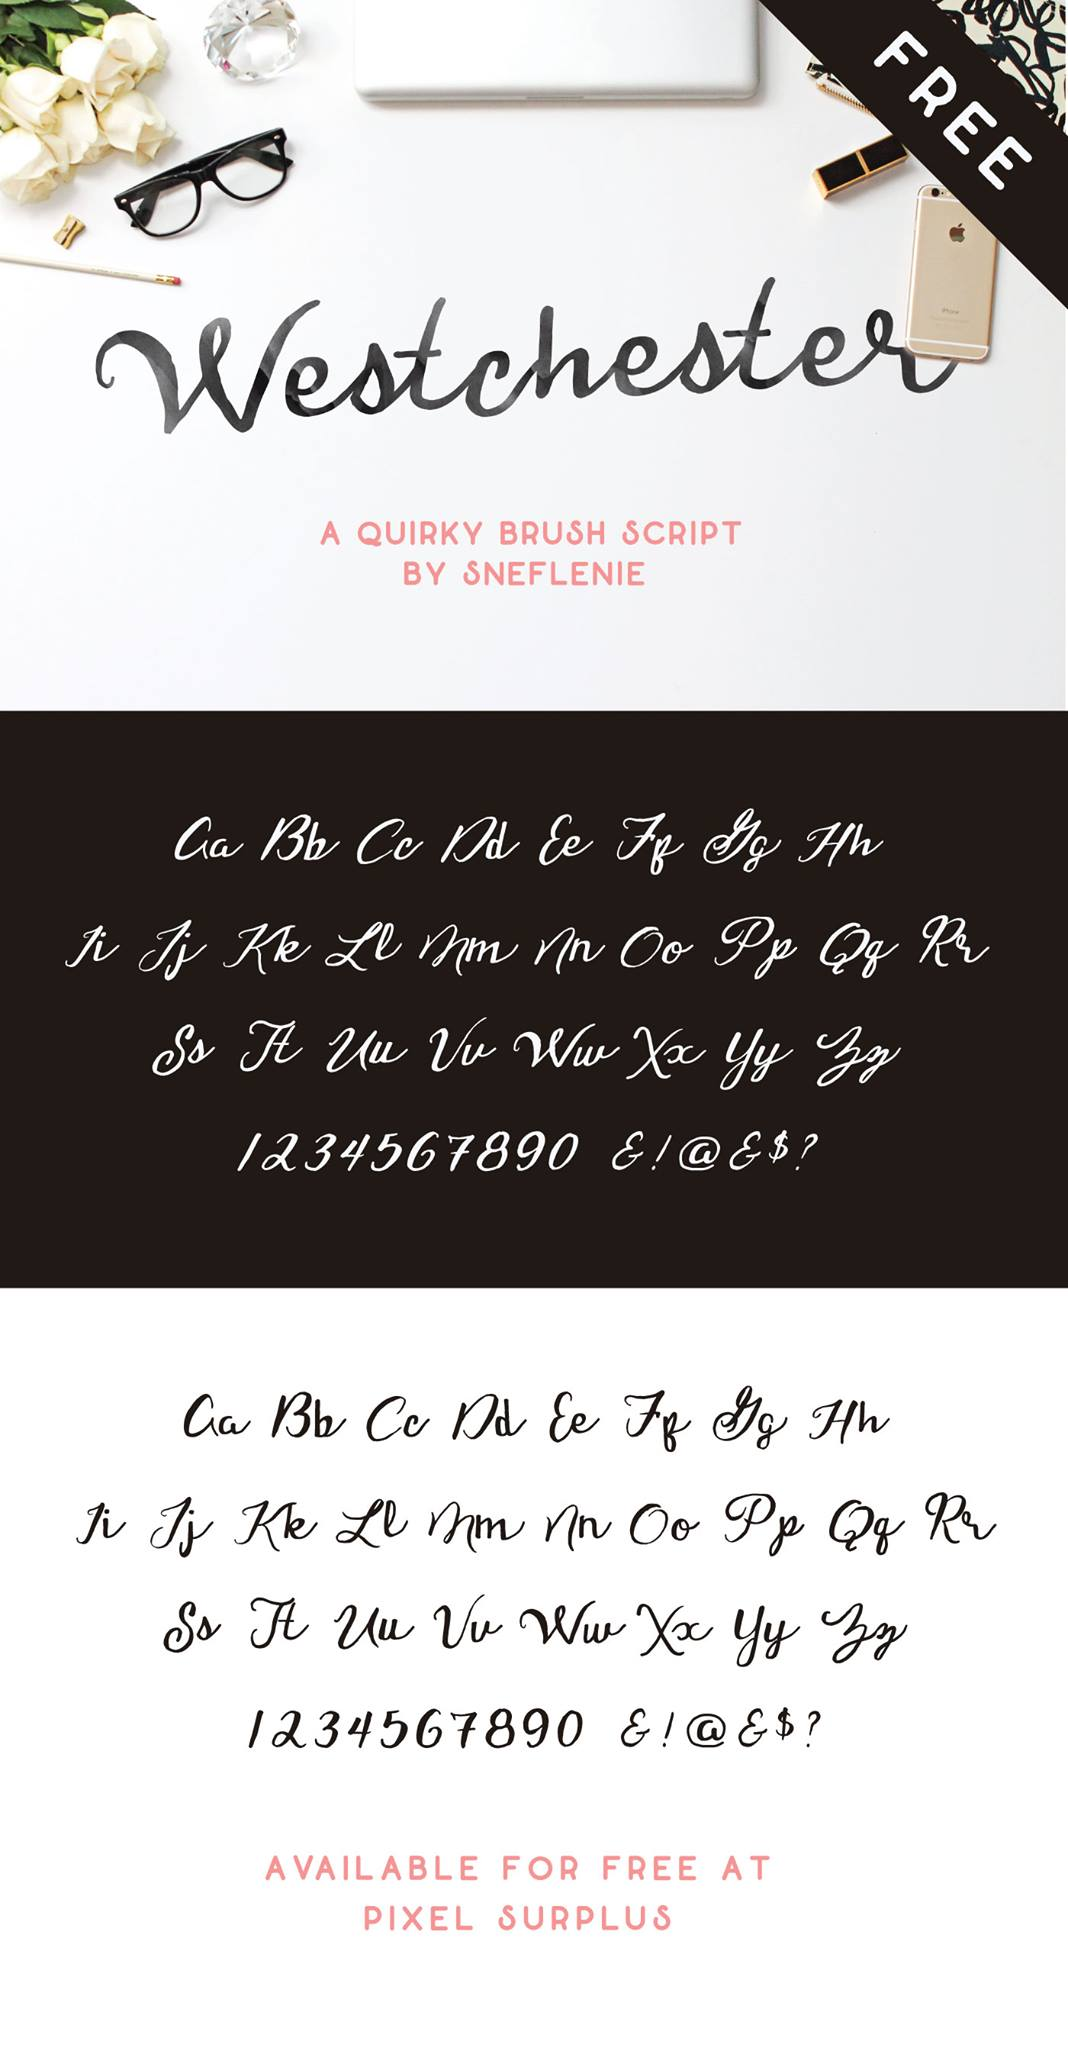 Westchester-Free-Quirky-Brush-Script